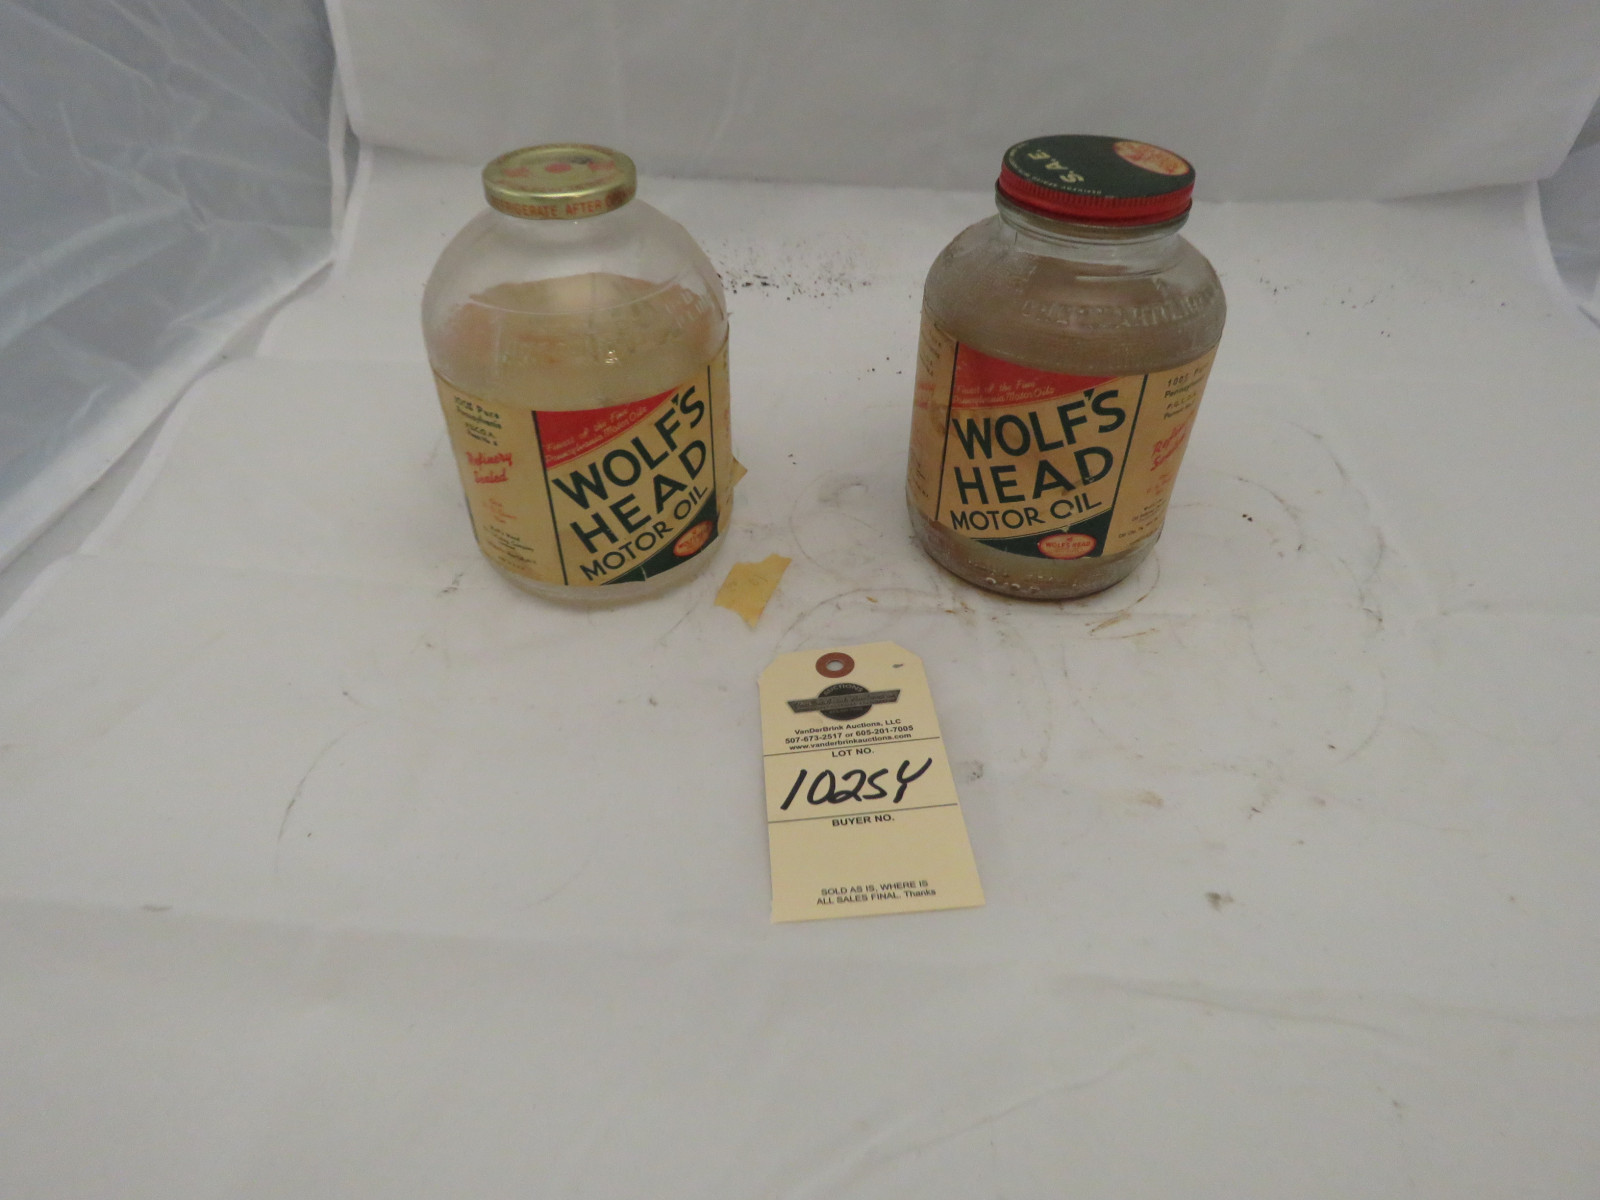 Wolfs Head Vintage Oil Bottles - Image 1